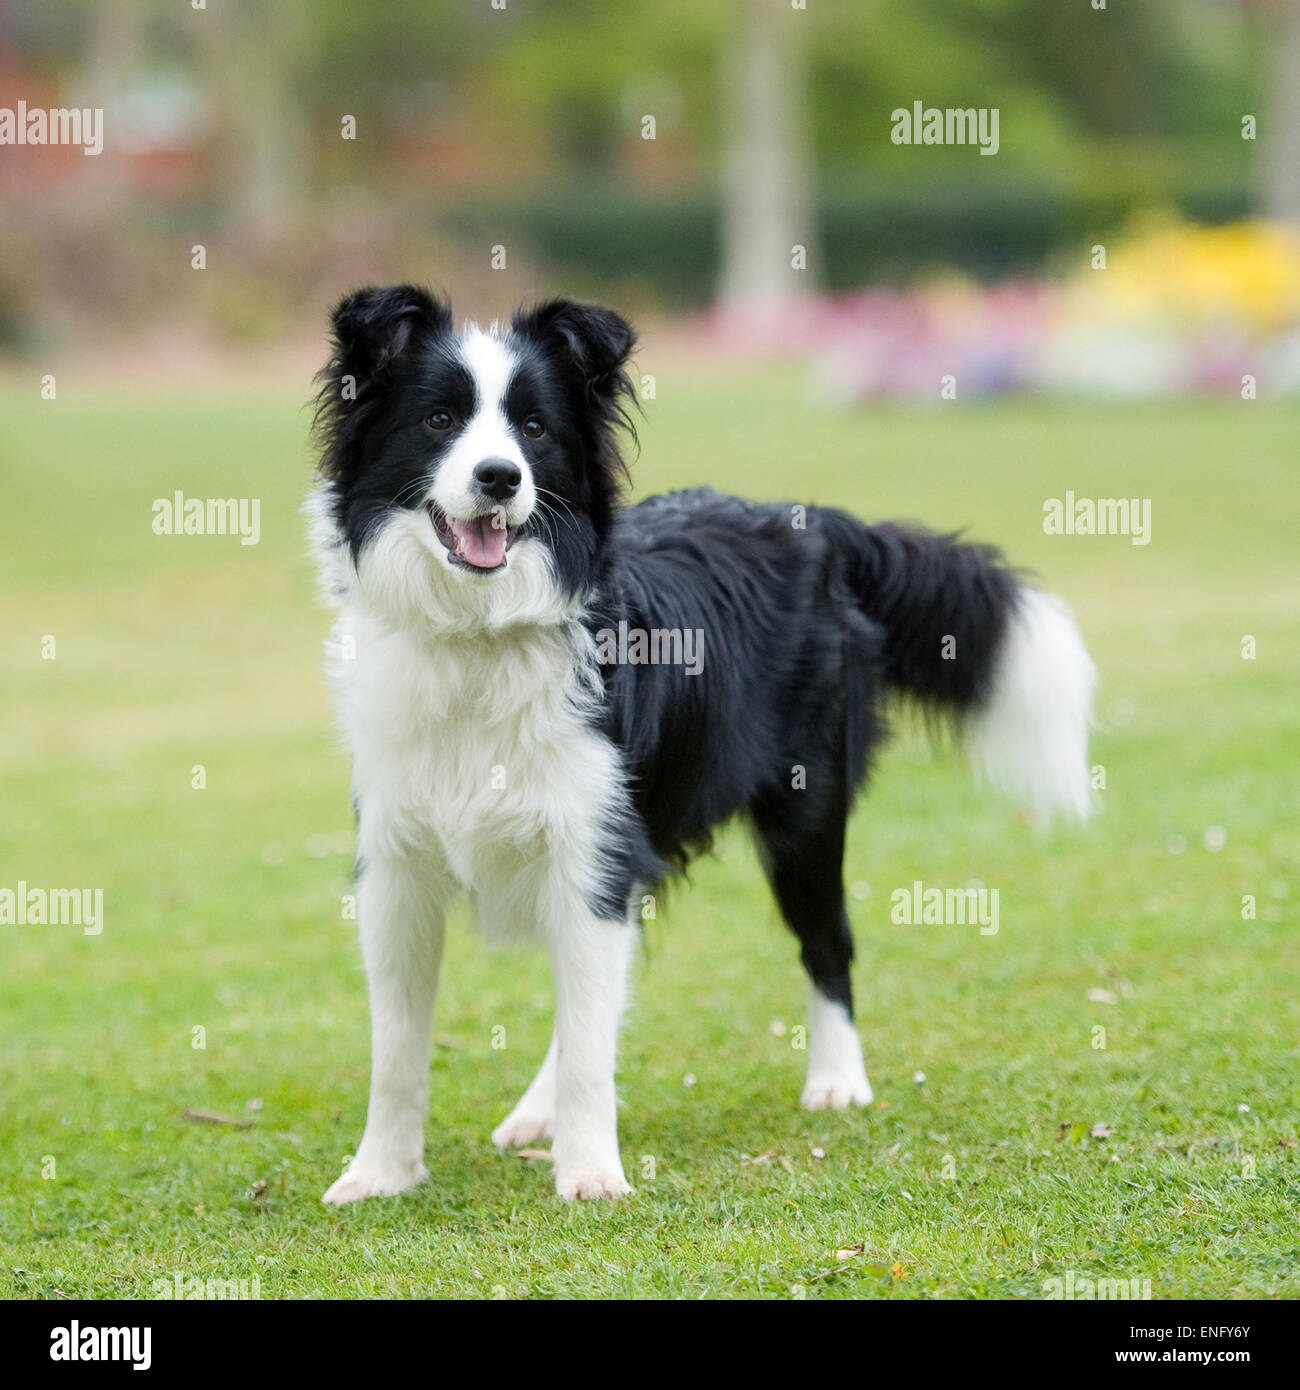 border collie Stock Photo Royalty Free Image 82099891  Alamy